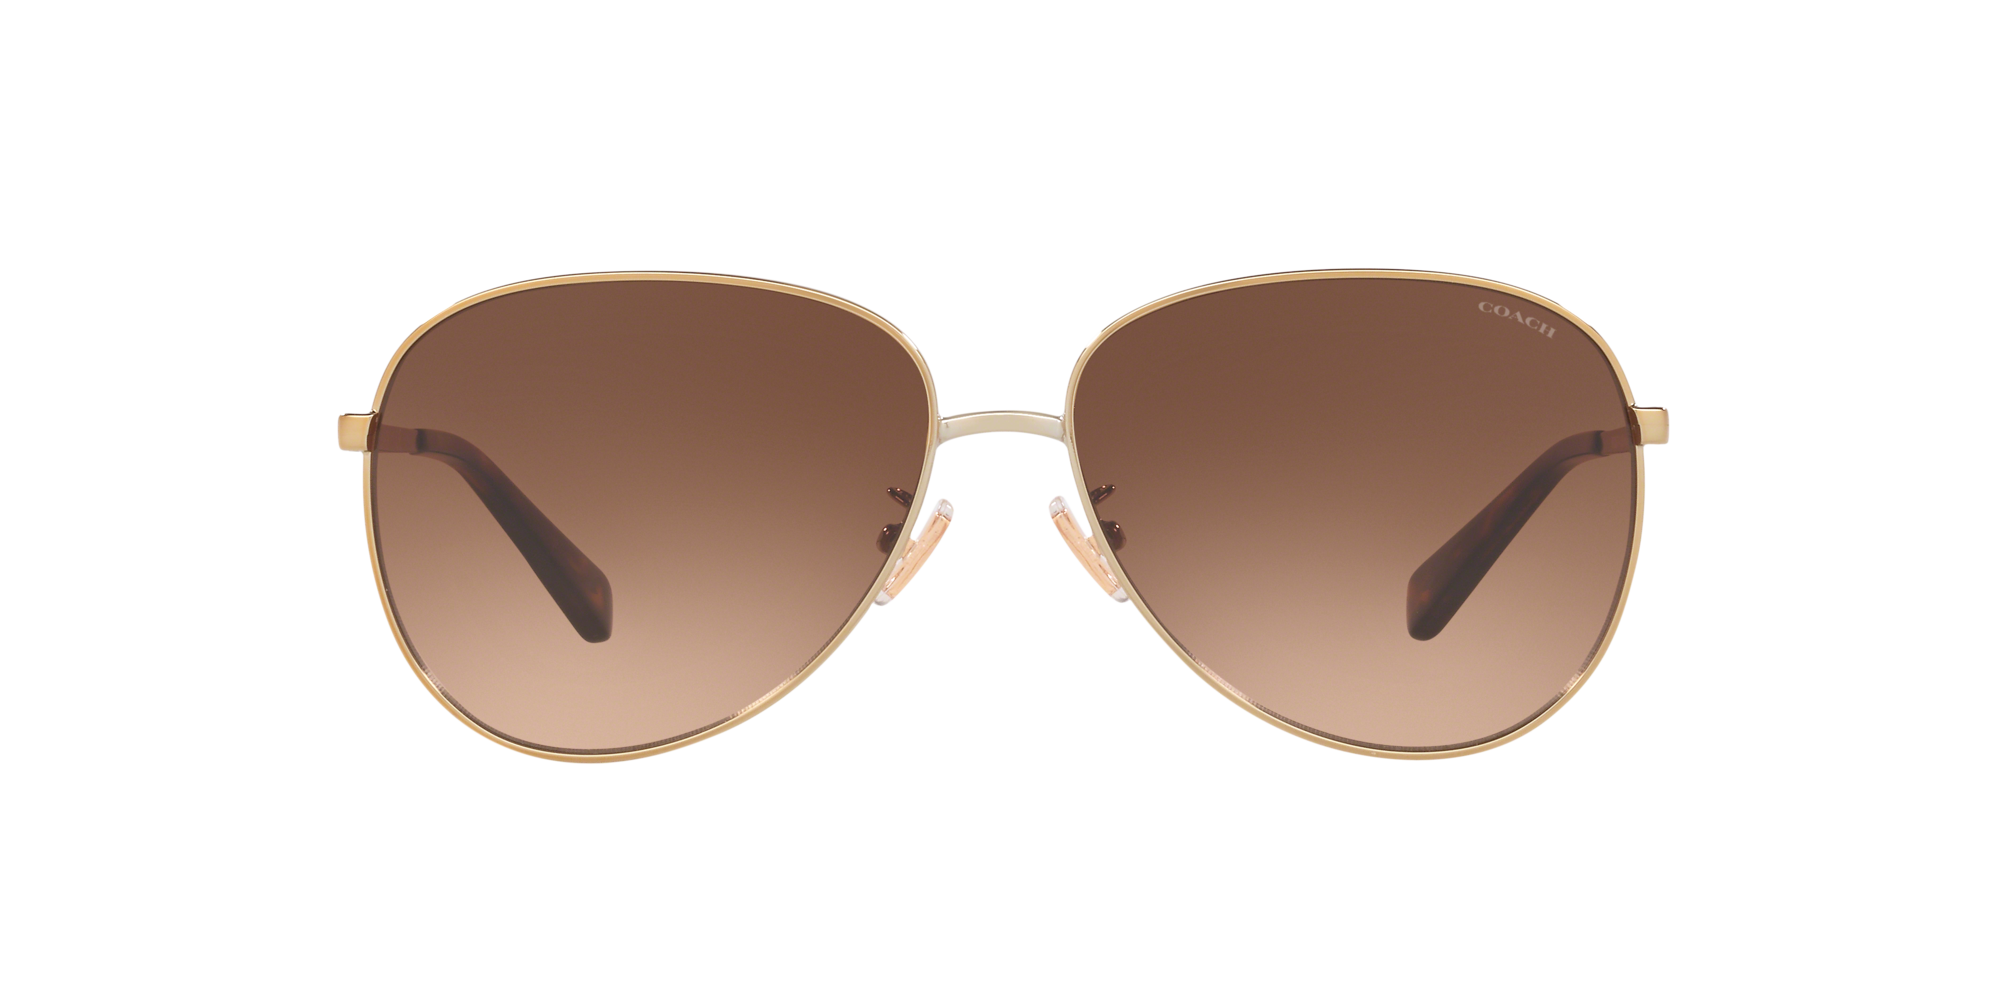 shop all women's sunglasses